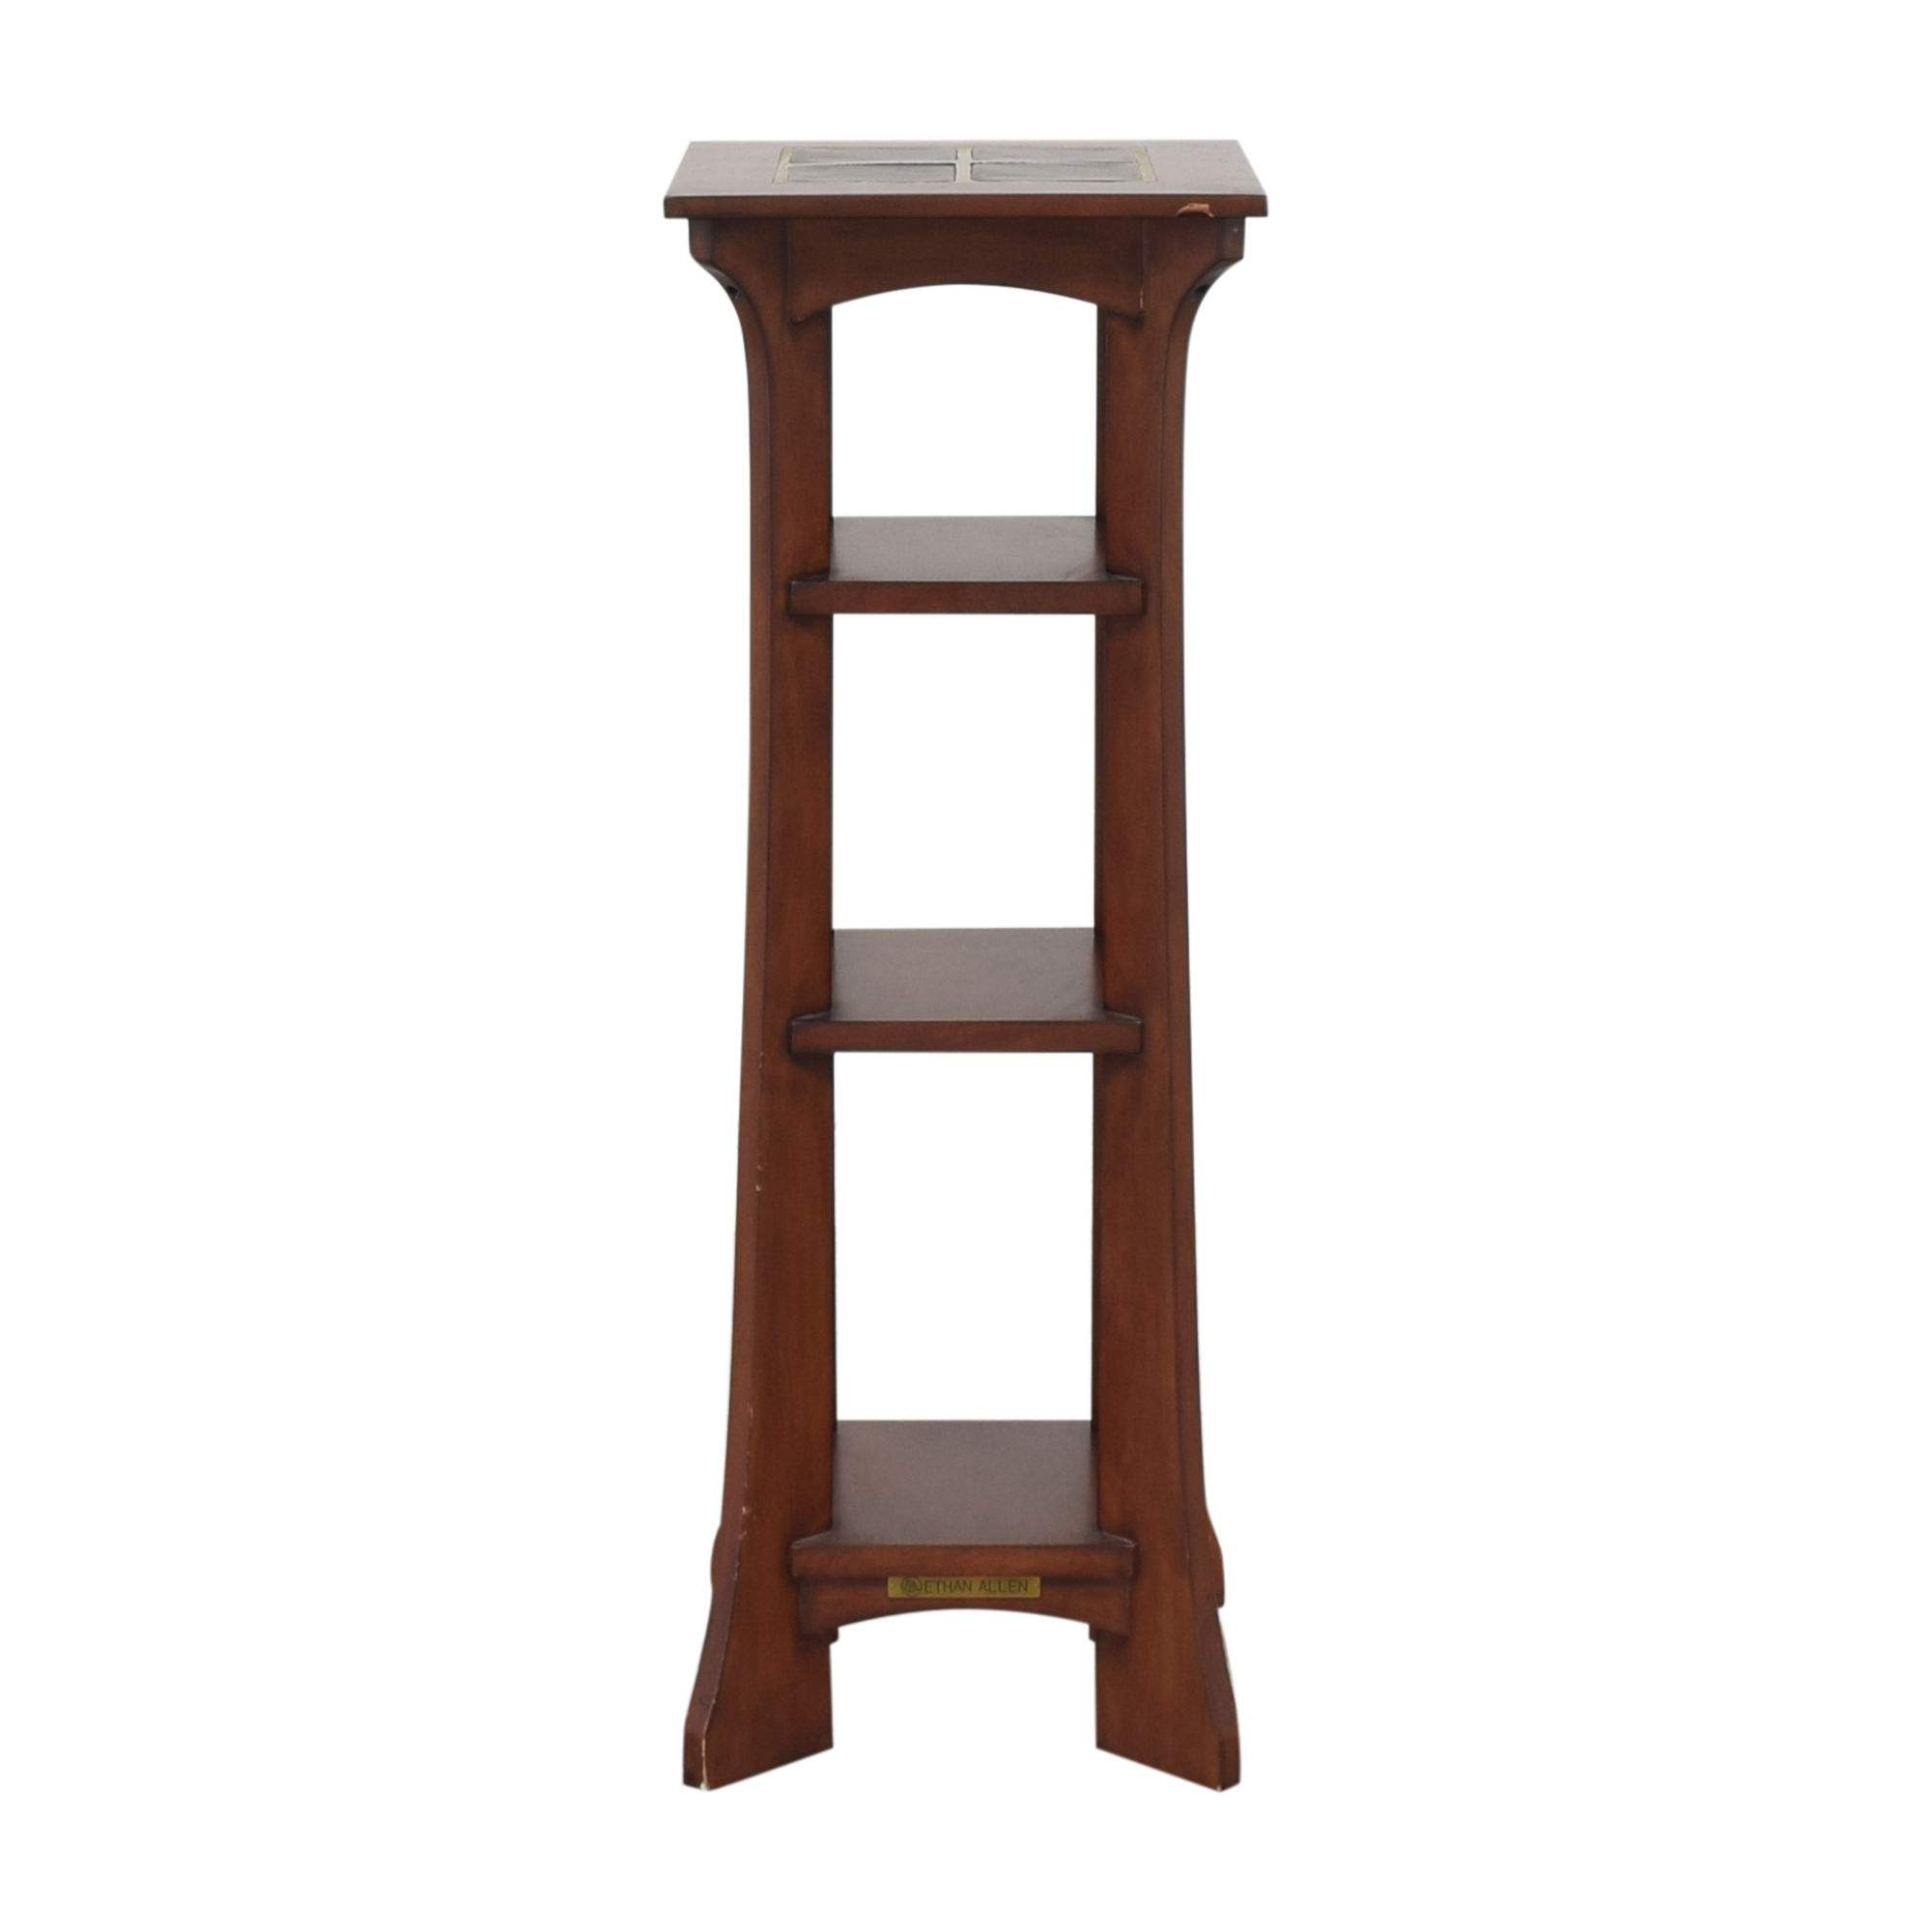 Ethan Allen Ethan Allen American Impressions Four Tier Plant Stand pa